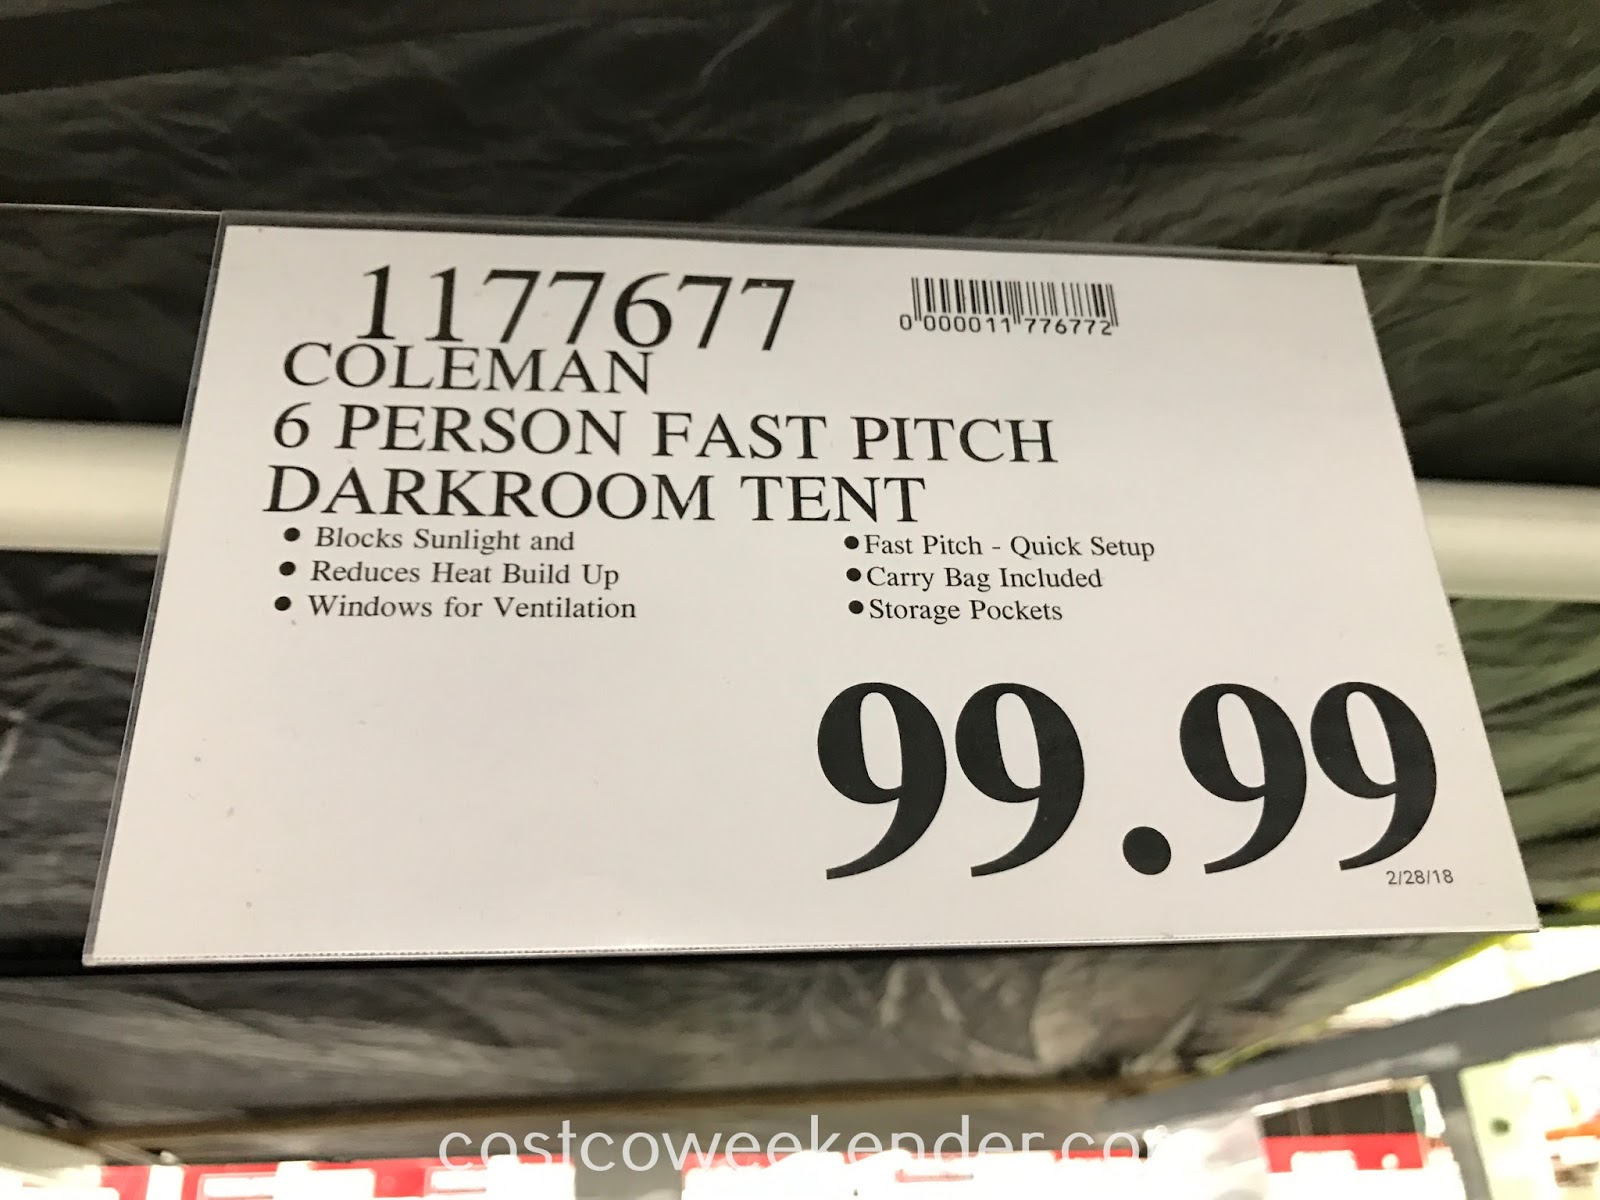 Deal for the Coleman 6-person Fast Pitch Dark Room Dome Tent at Costco